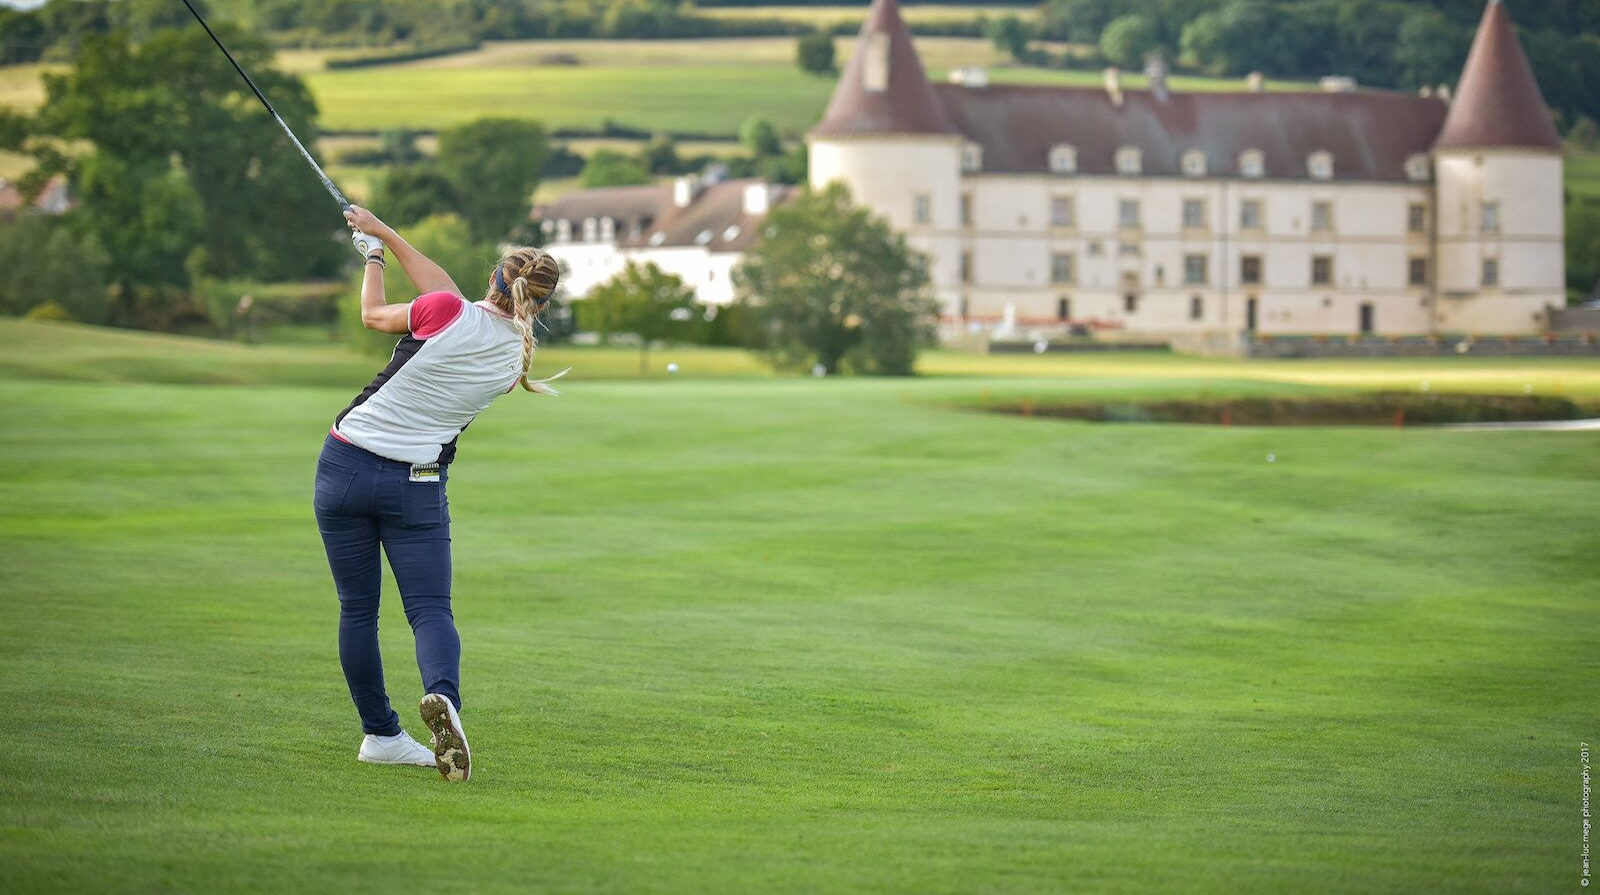 Golf at Chateau Chailly